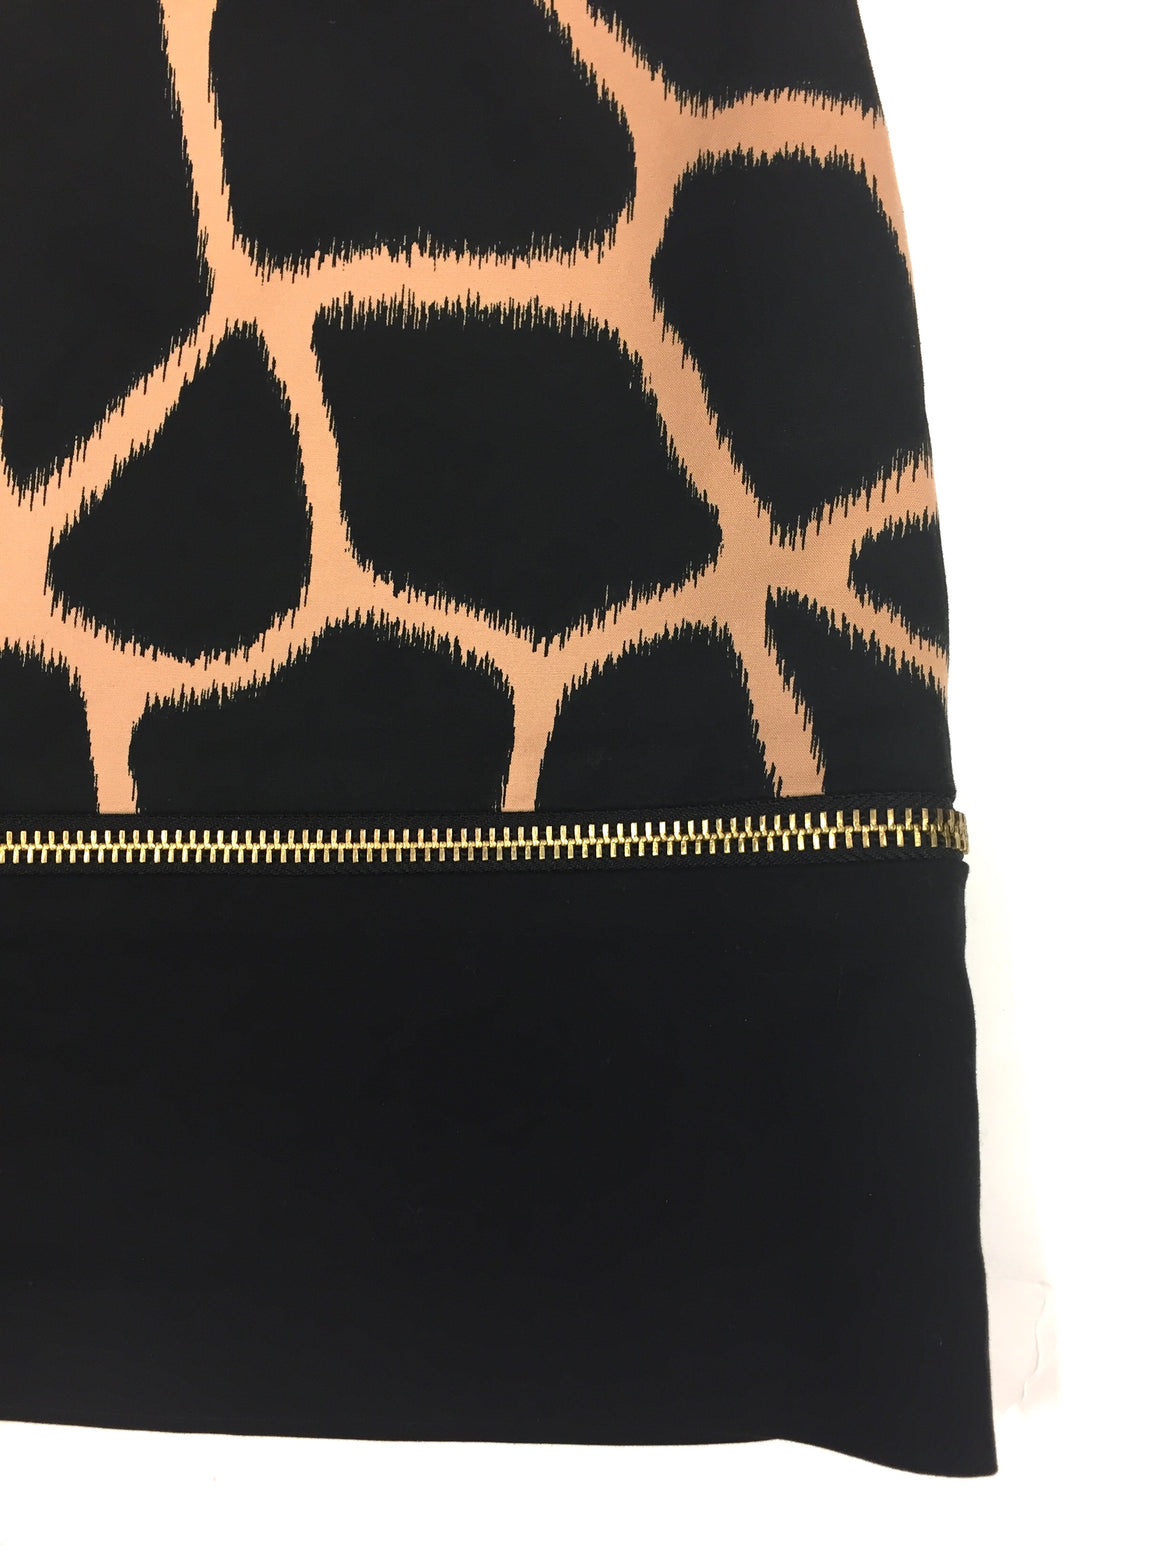 MICHAEL/MICHAEL KORS Black/Tan Giraffe-Print Cotton Wraparound Zipper Mini Skirt Sz2